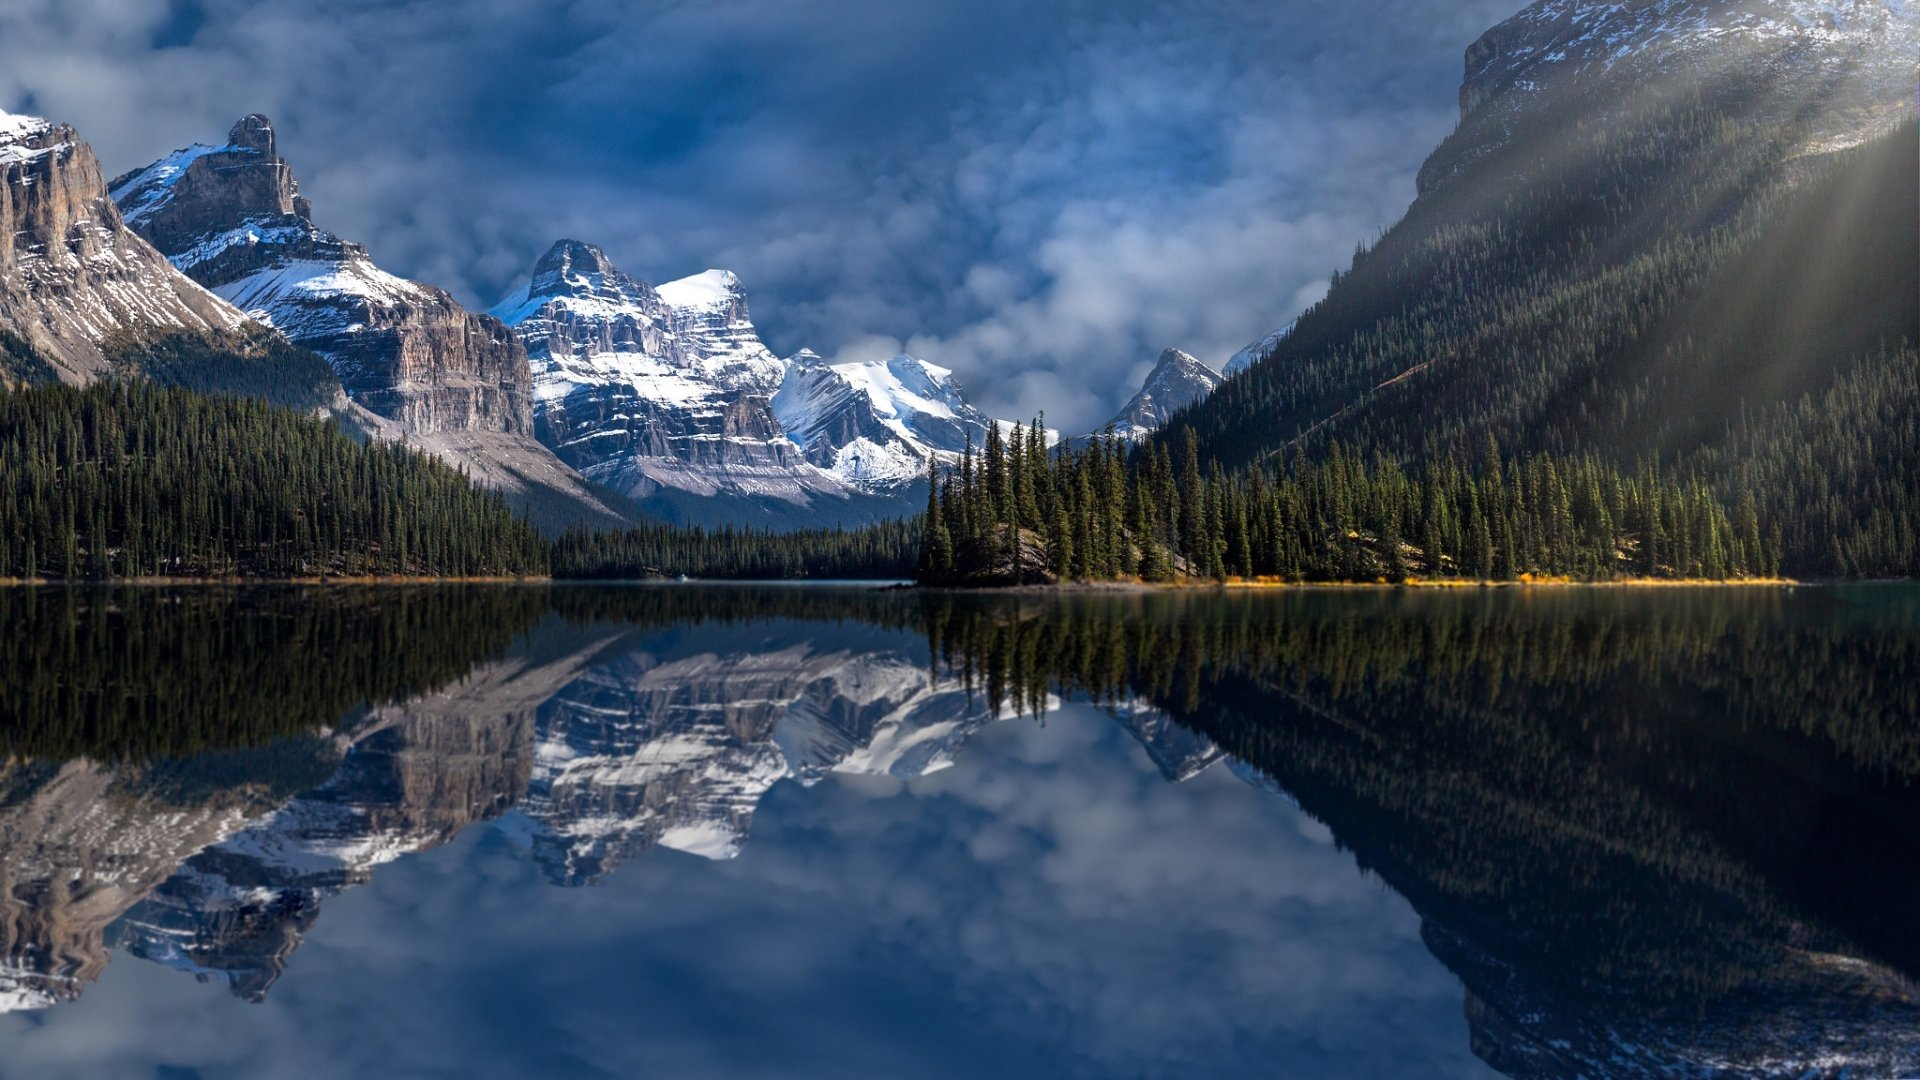 Reflection Hd Wallpaper Background Image 2048x1152 Id